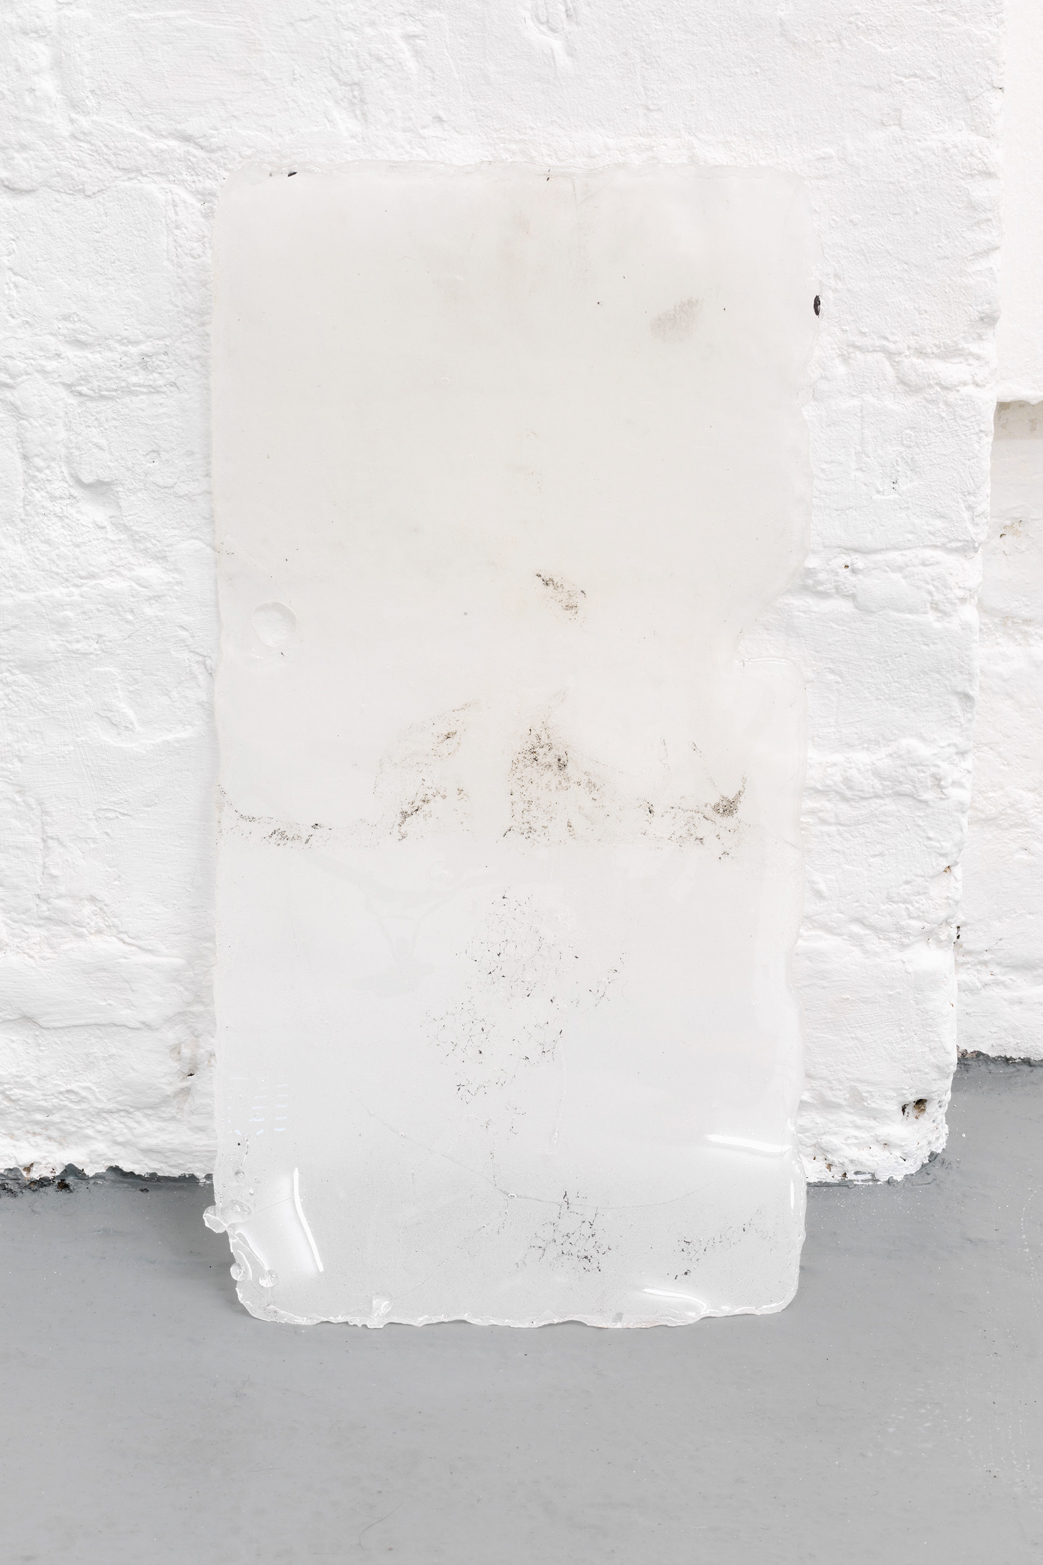 Andrea Zucchini, Untitled, 2014, glass wax, slate. Tenderpixel.